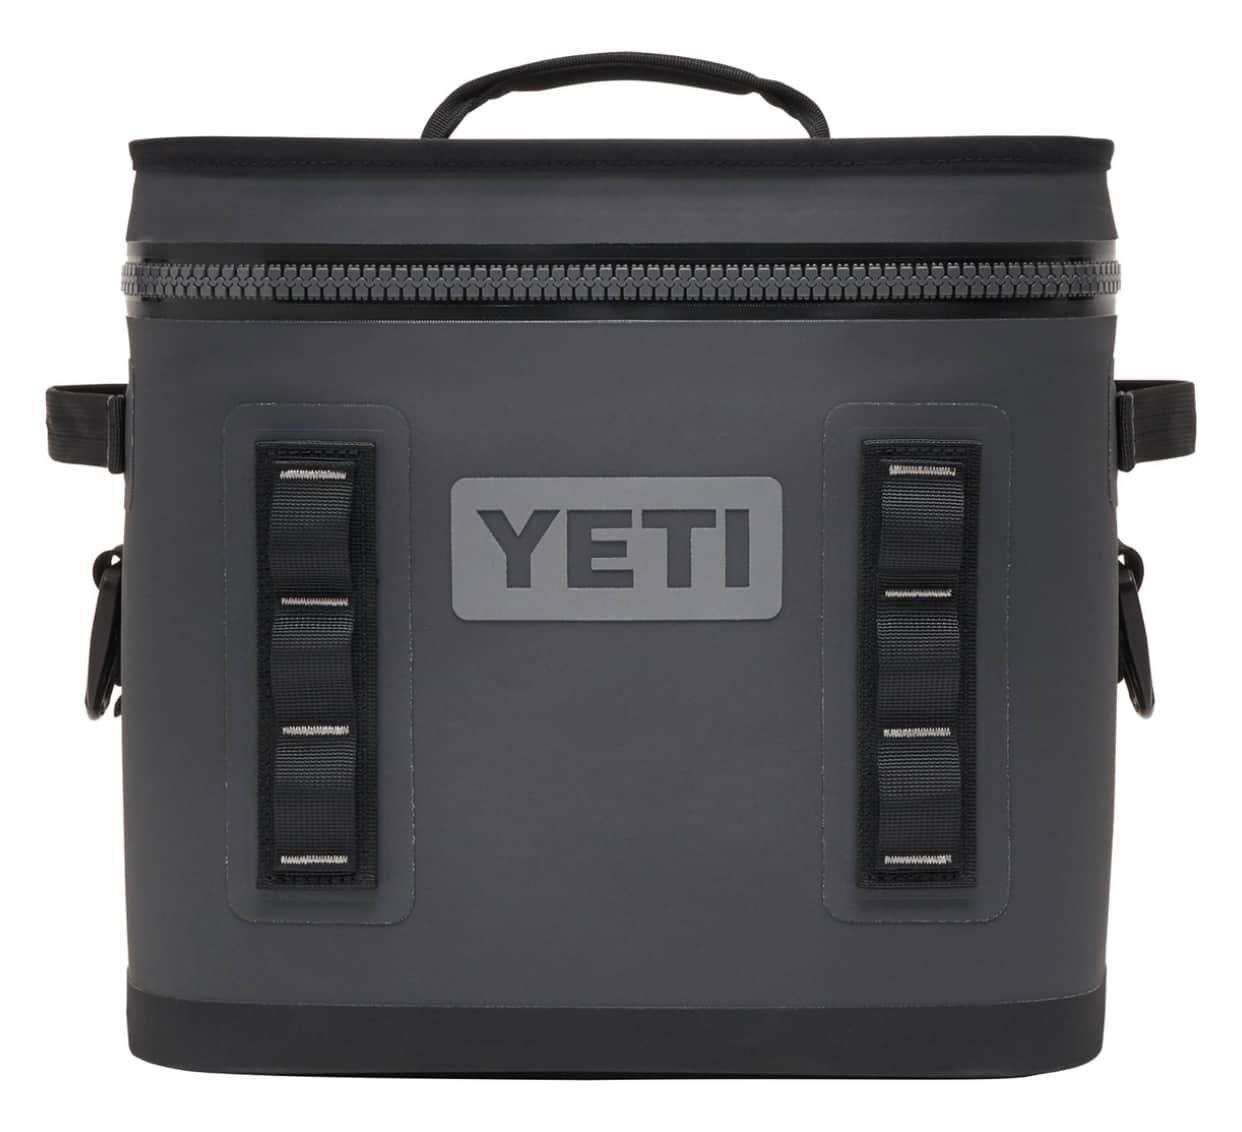 Military/vets AAFES has Yeti 20% off or more. Yeti hopper flip 12 (charcoal) $179 and more